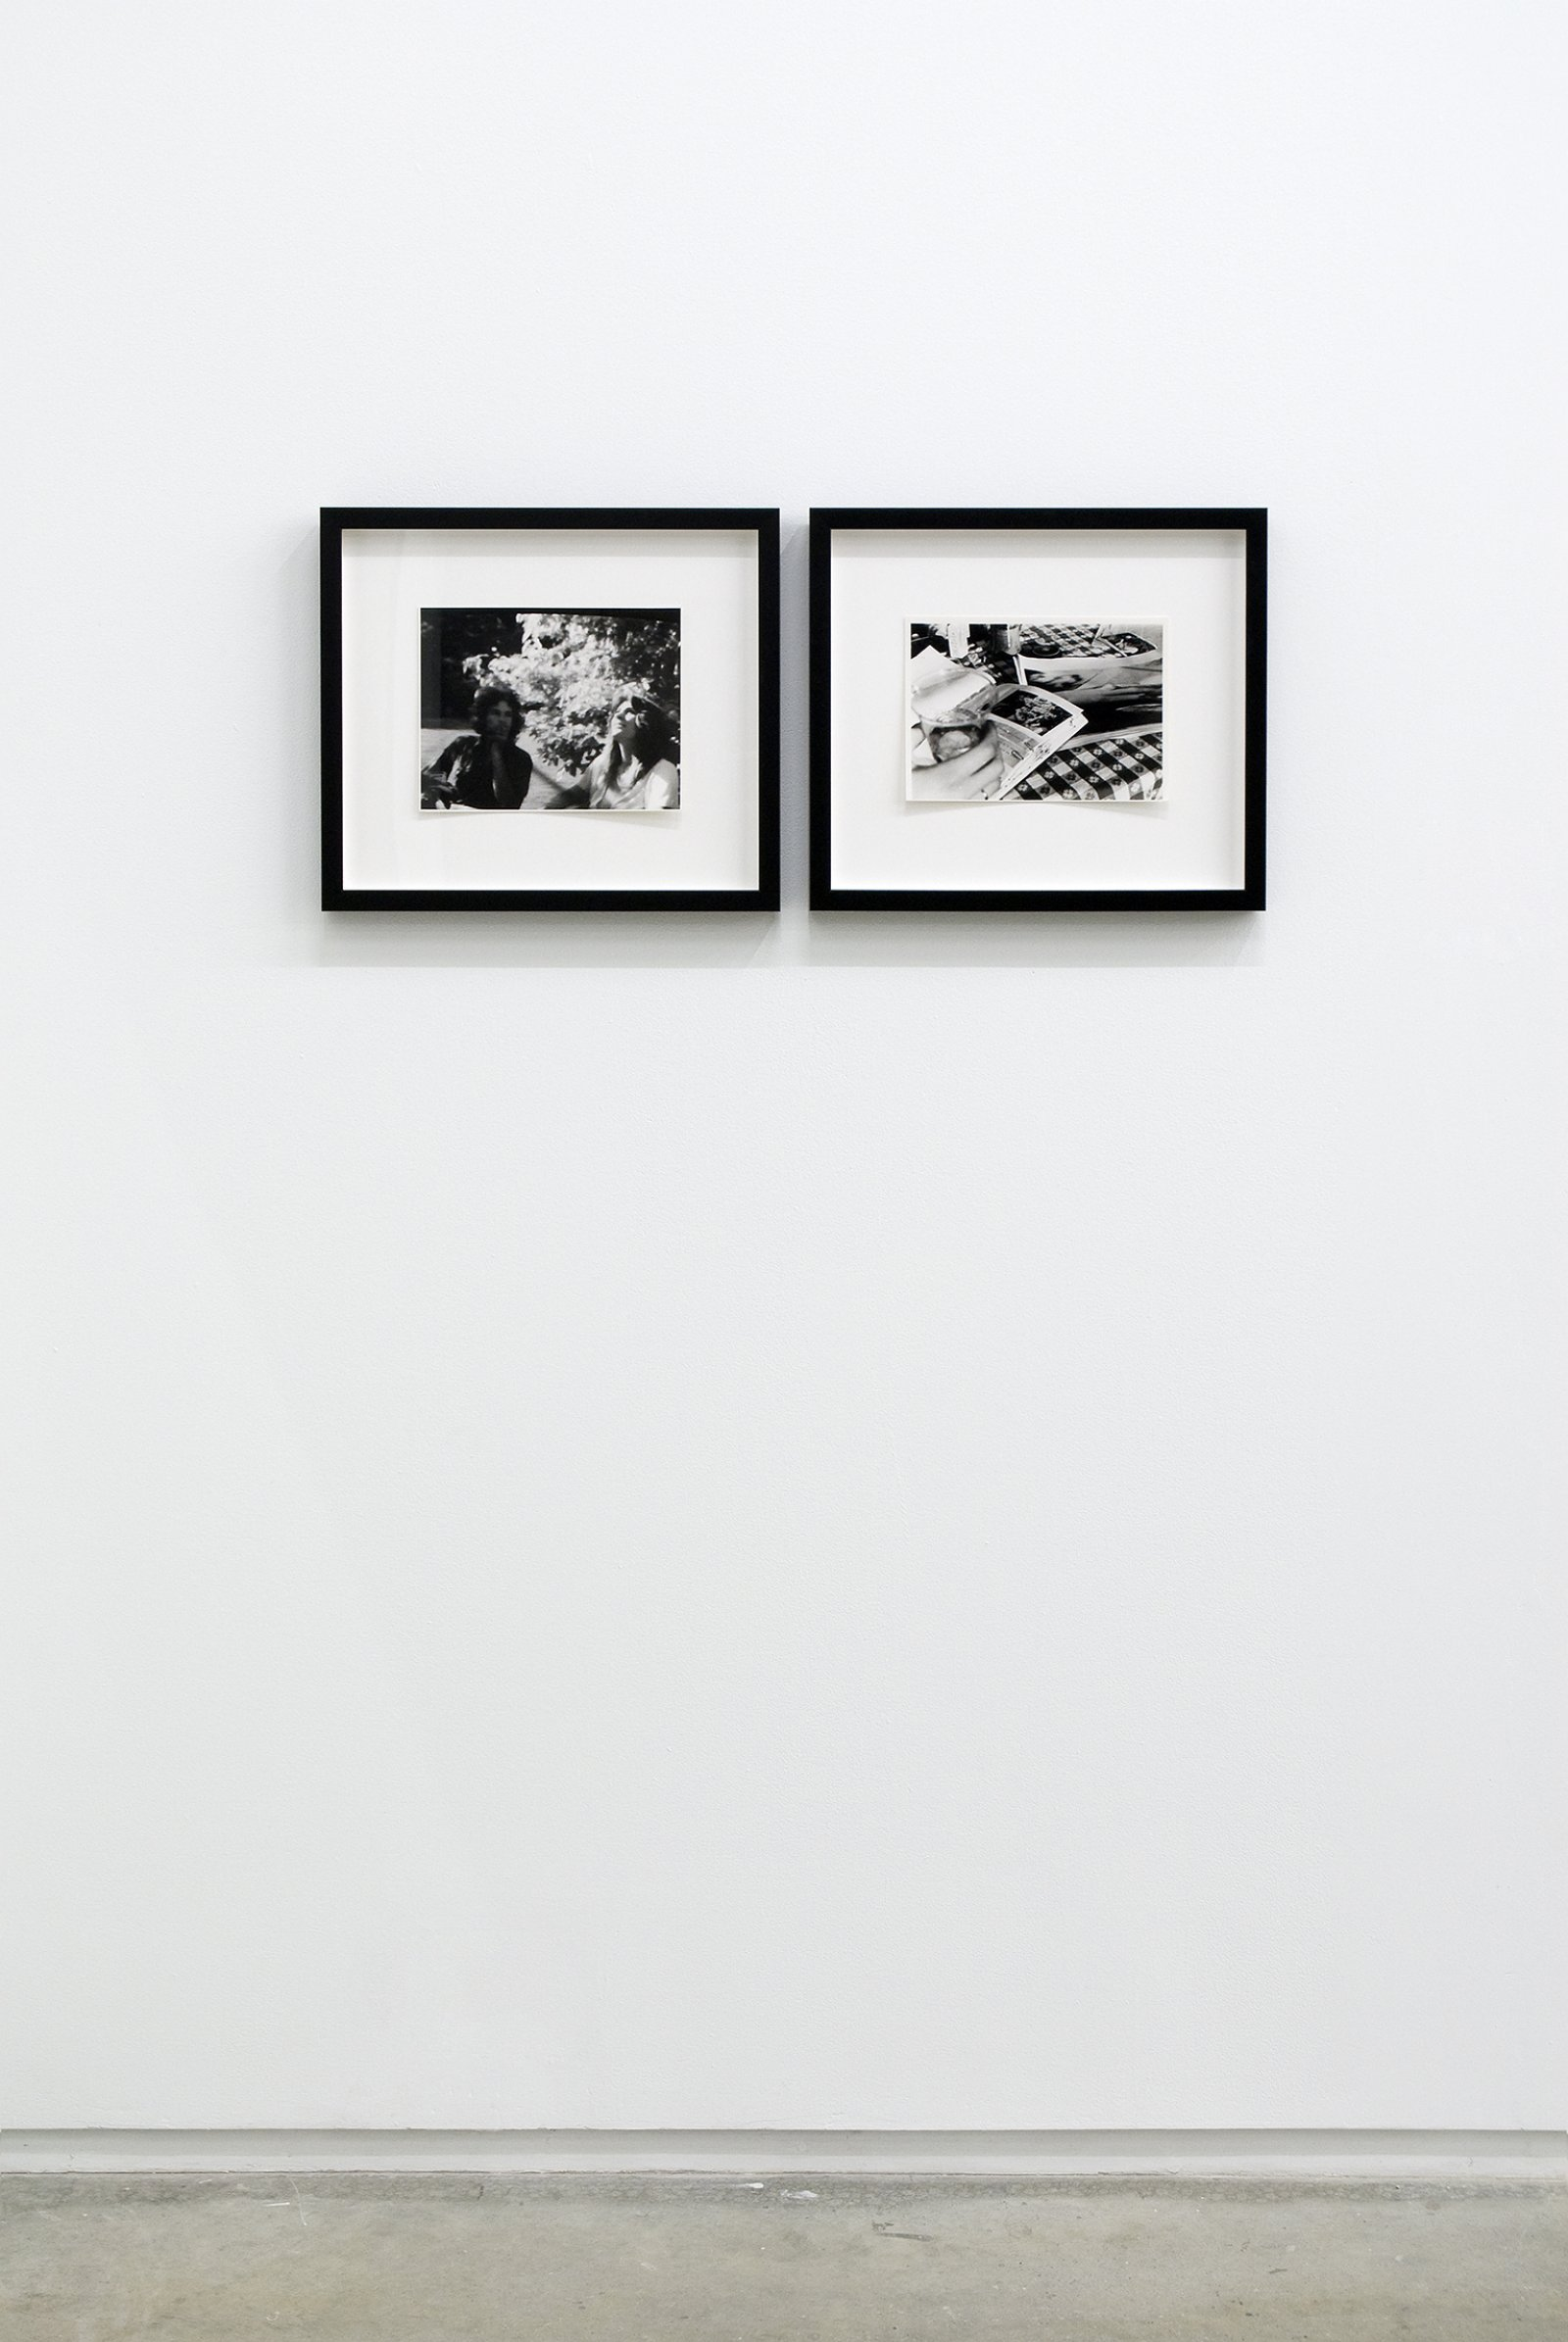 Ian Wallace,Studies for The Summer Script I & II, 1973, 2 black and white photographs, each 15 x 17 in. (37 x 43 cm)